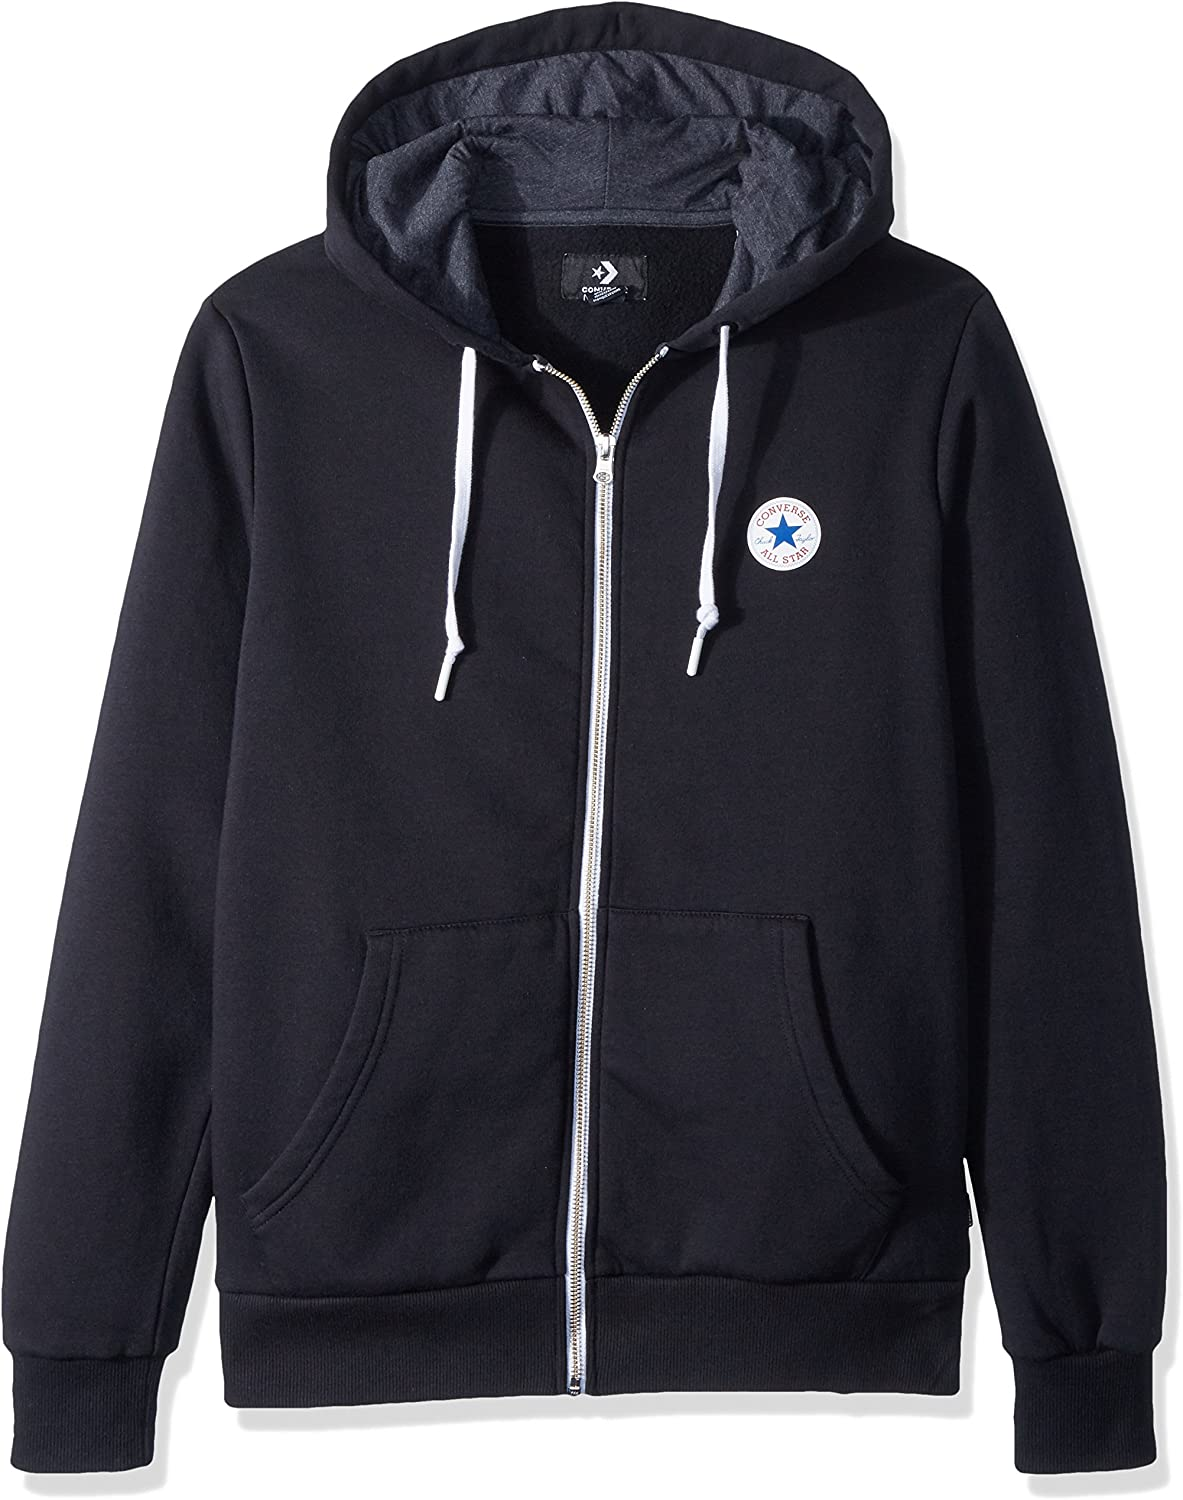 Amazon.com: Converse Men's Full Zip Hoodie: Clothing